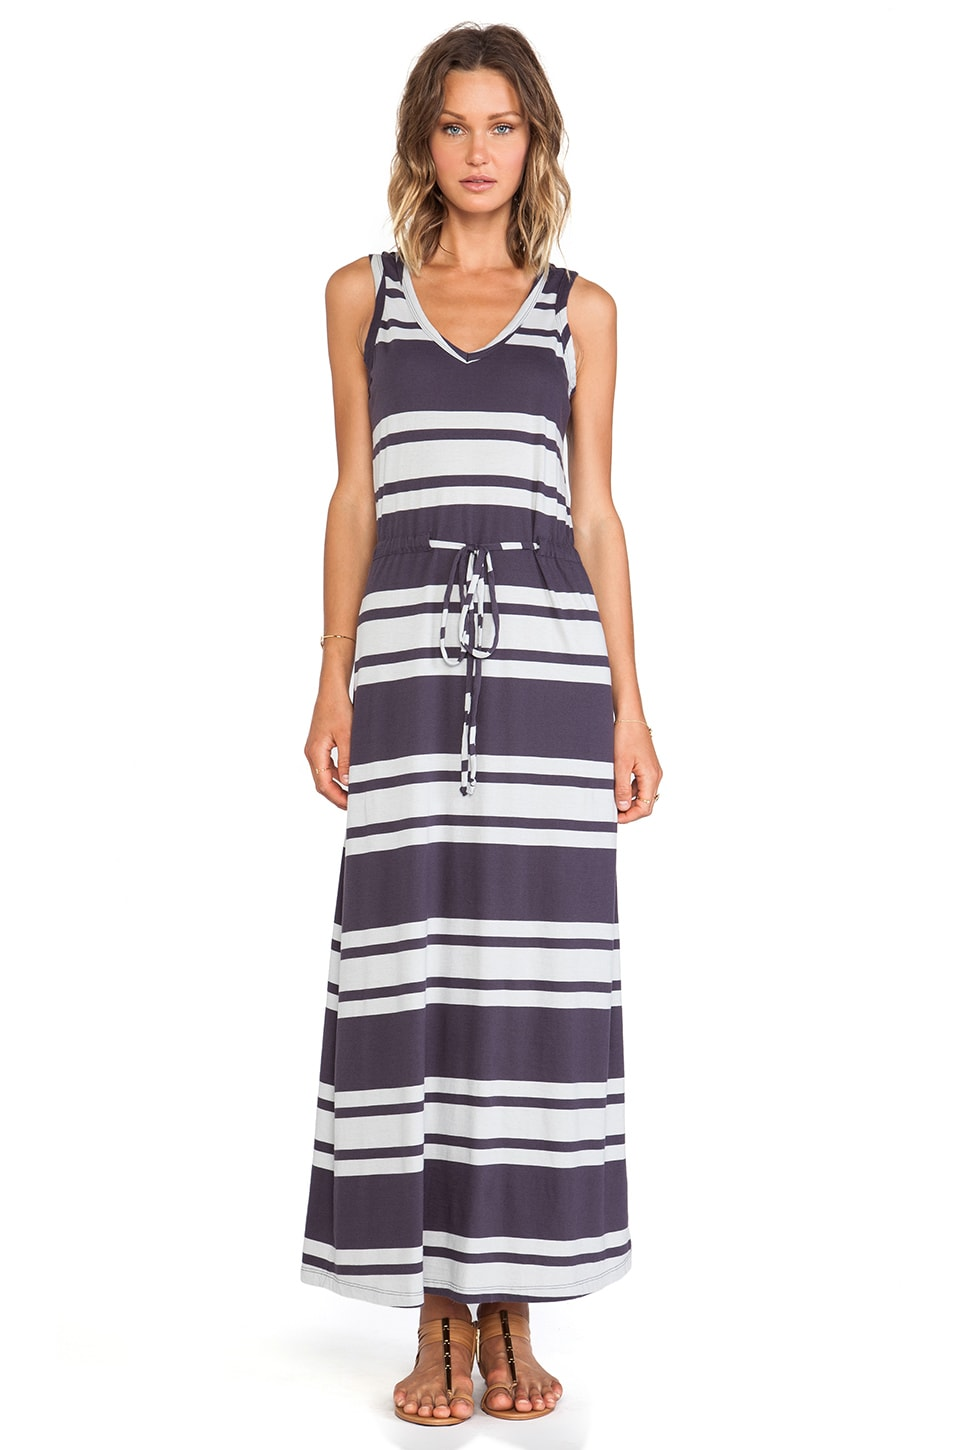 Bobi Light Weight Jersey Striped Maxi Dress in Deep Grey & Shore